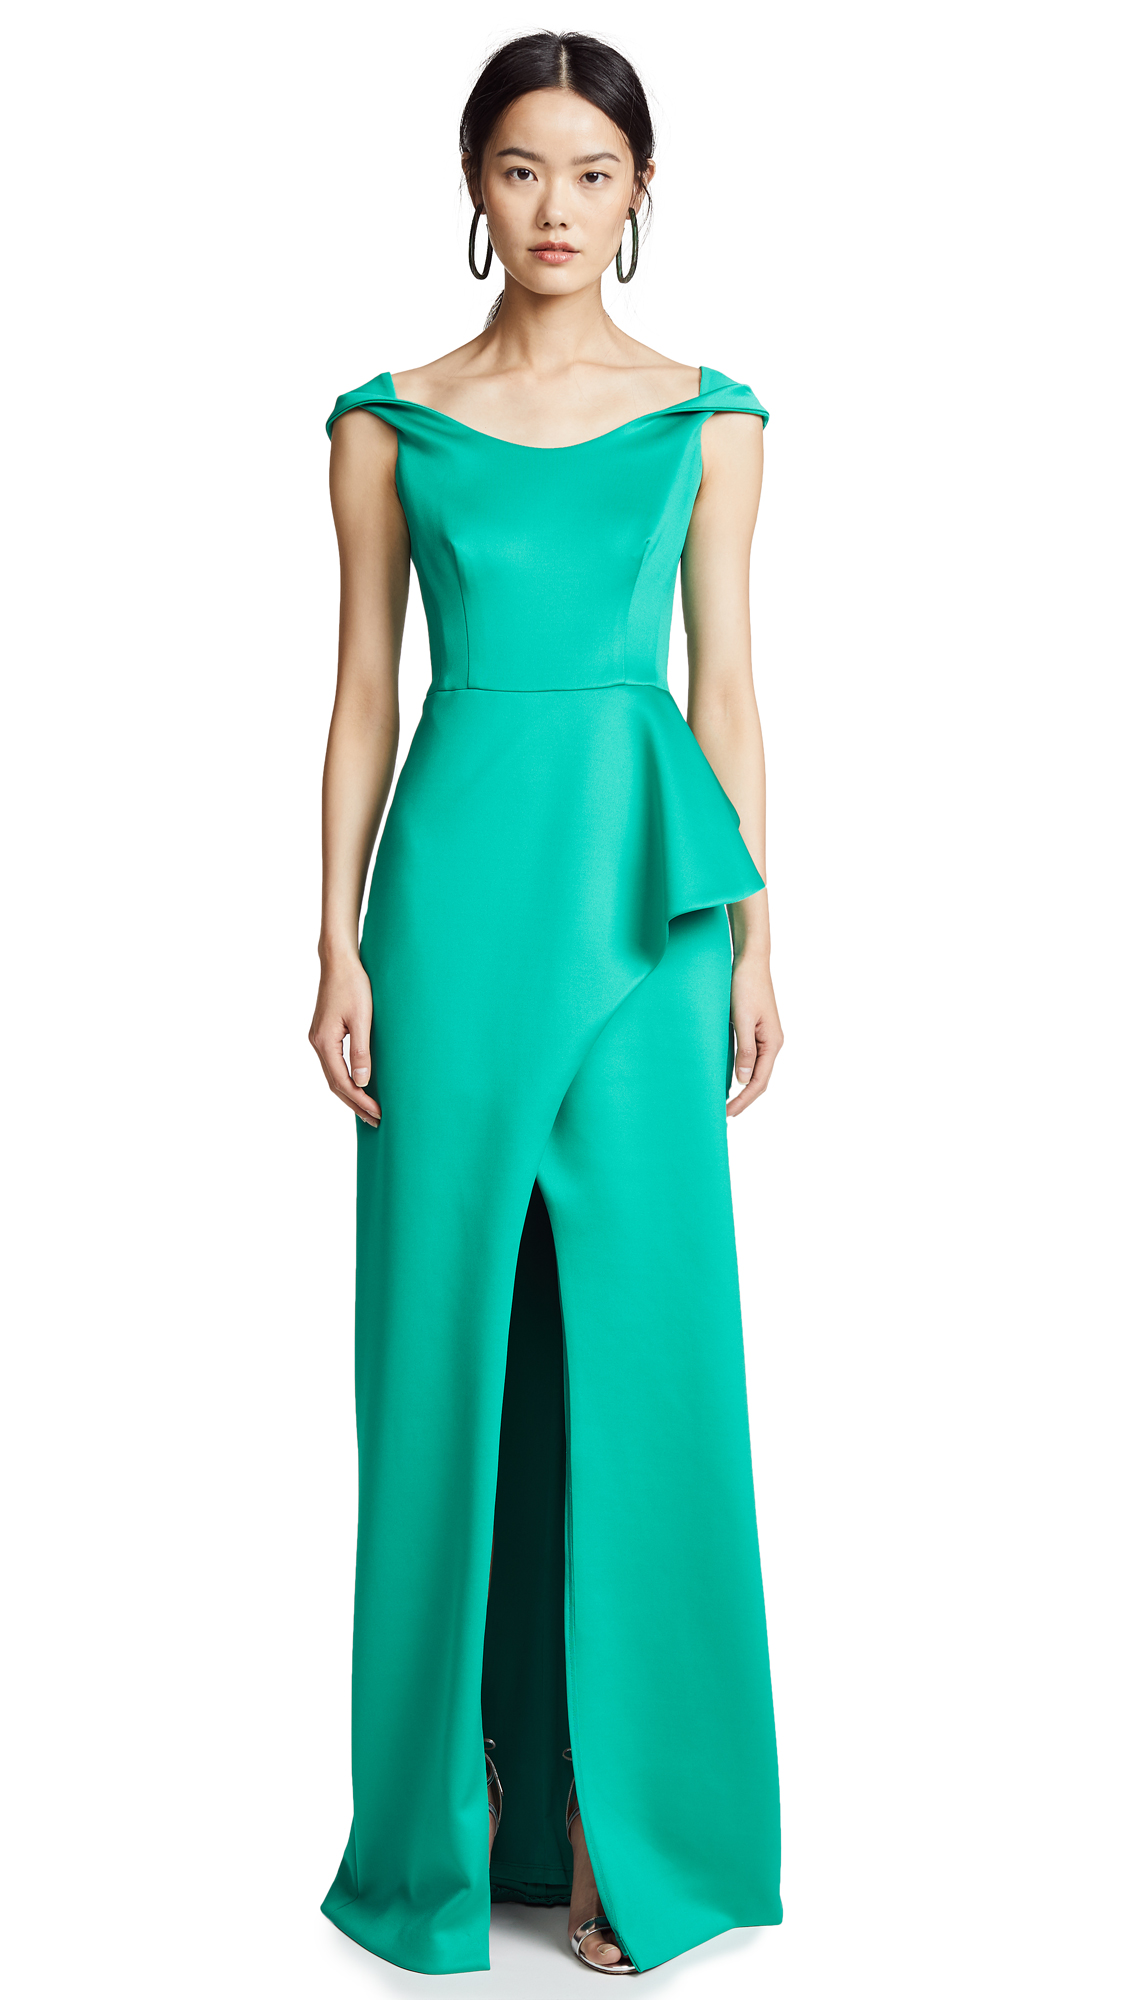 Black Halo Padma Dress - Emerald